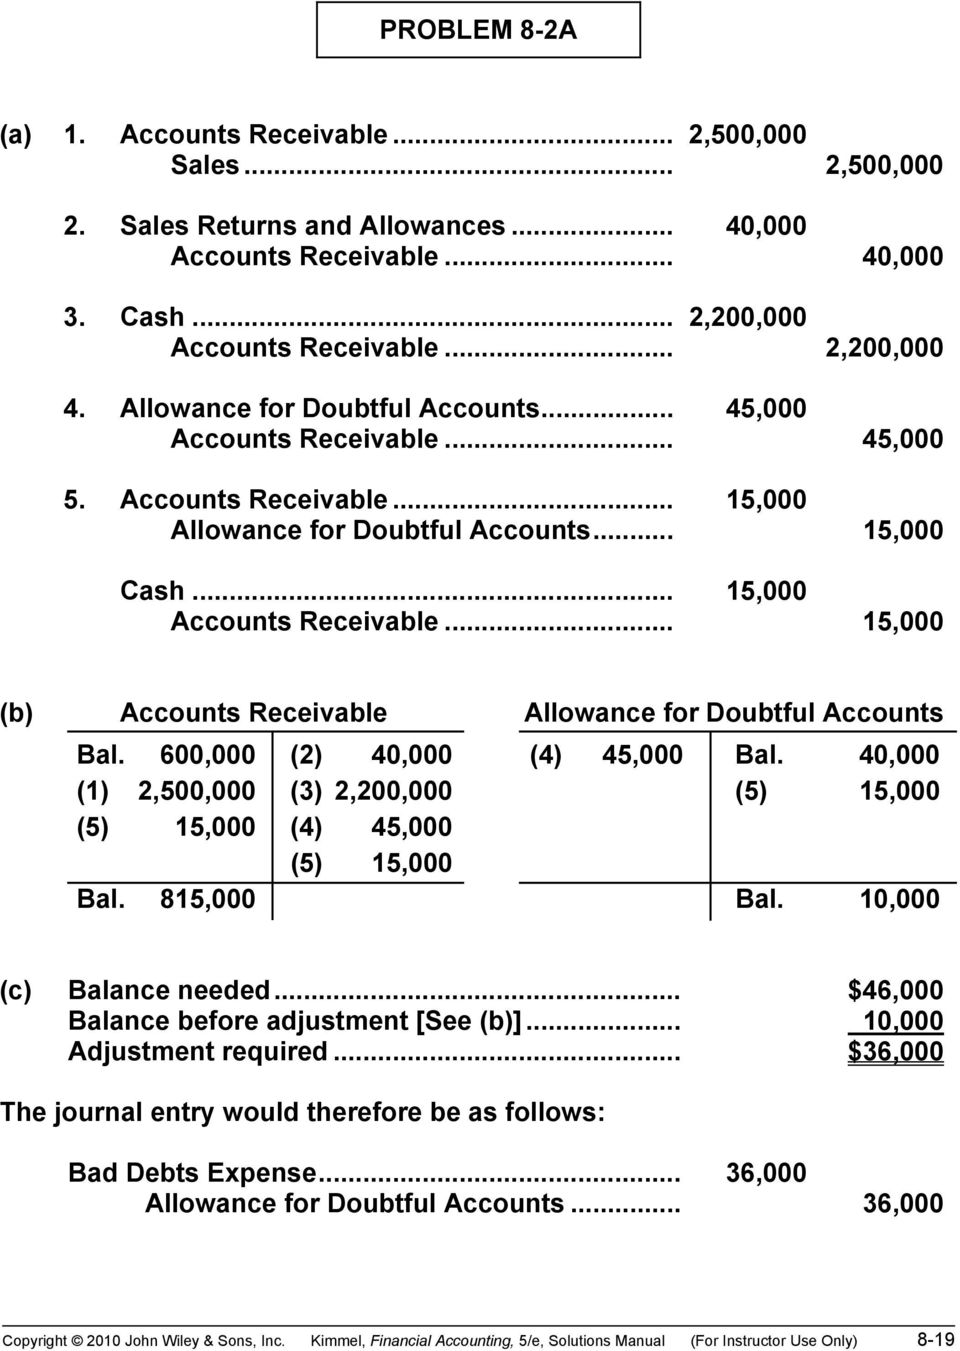 .. 15,000 (b) Accounts Receivable Allowance for Doubtful Accounts Bal. 600,000 (2) 40,000 (4) 45,000 Bal. 40,000 (1) 2,500,000 (3) 2,200,000 (5) 15,000 (5) 15,000 (4) 45,000 (5) 15,000 Bal.